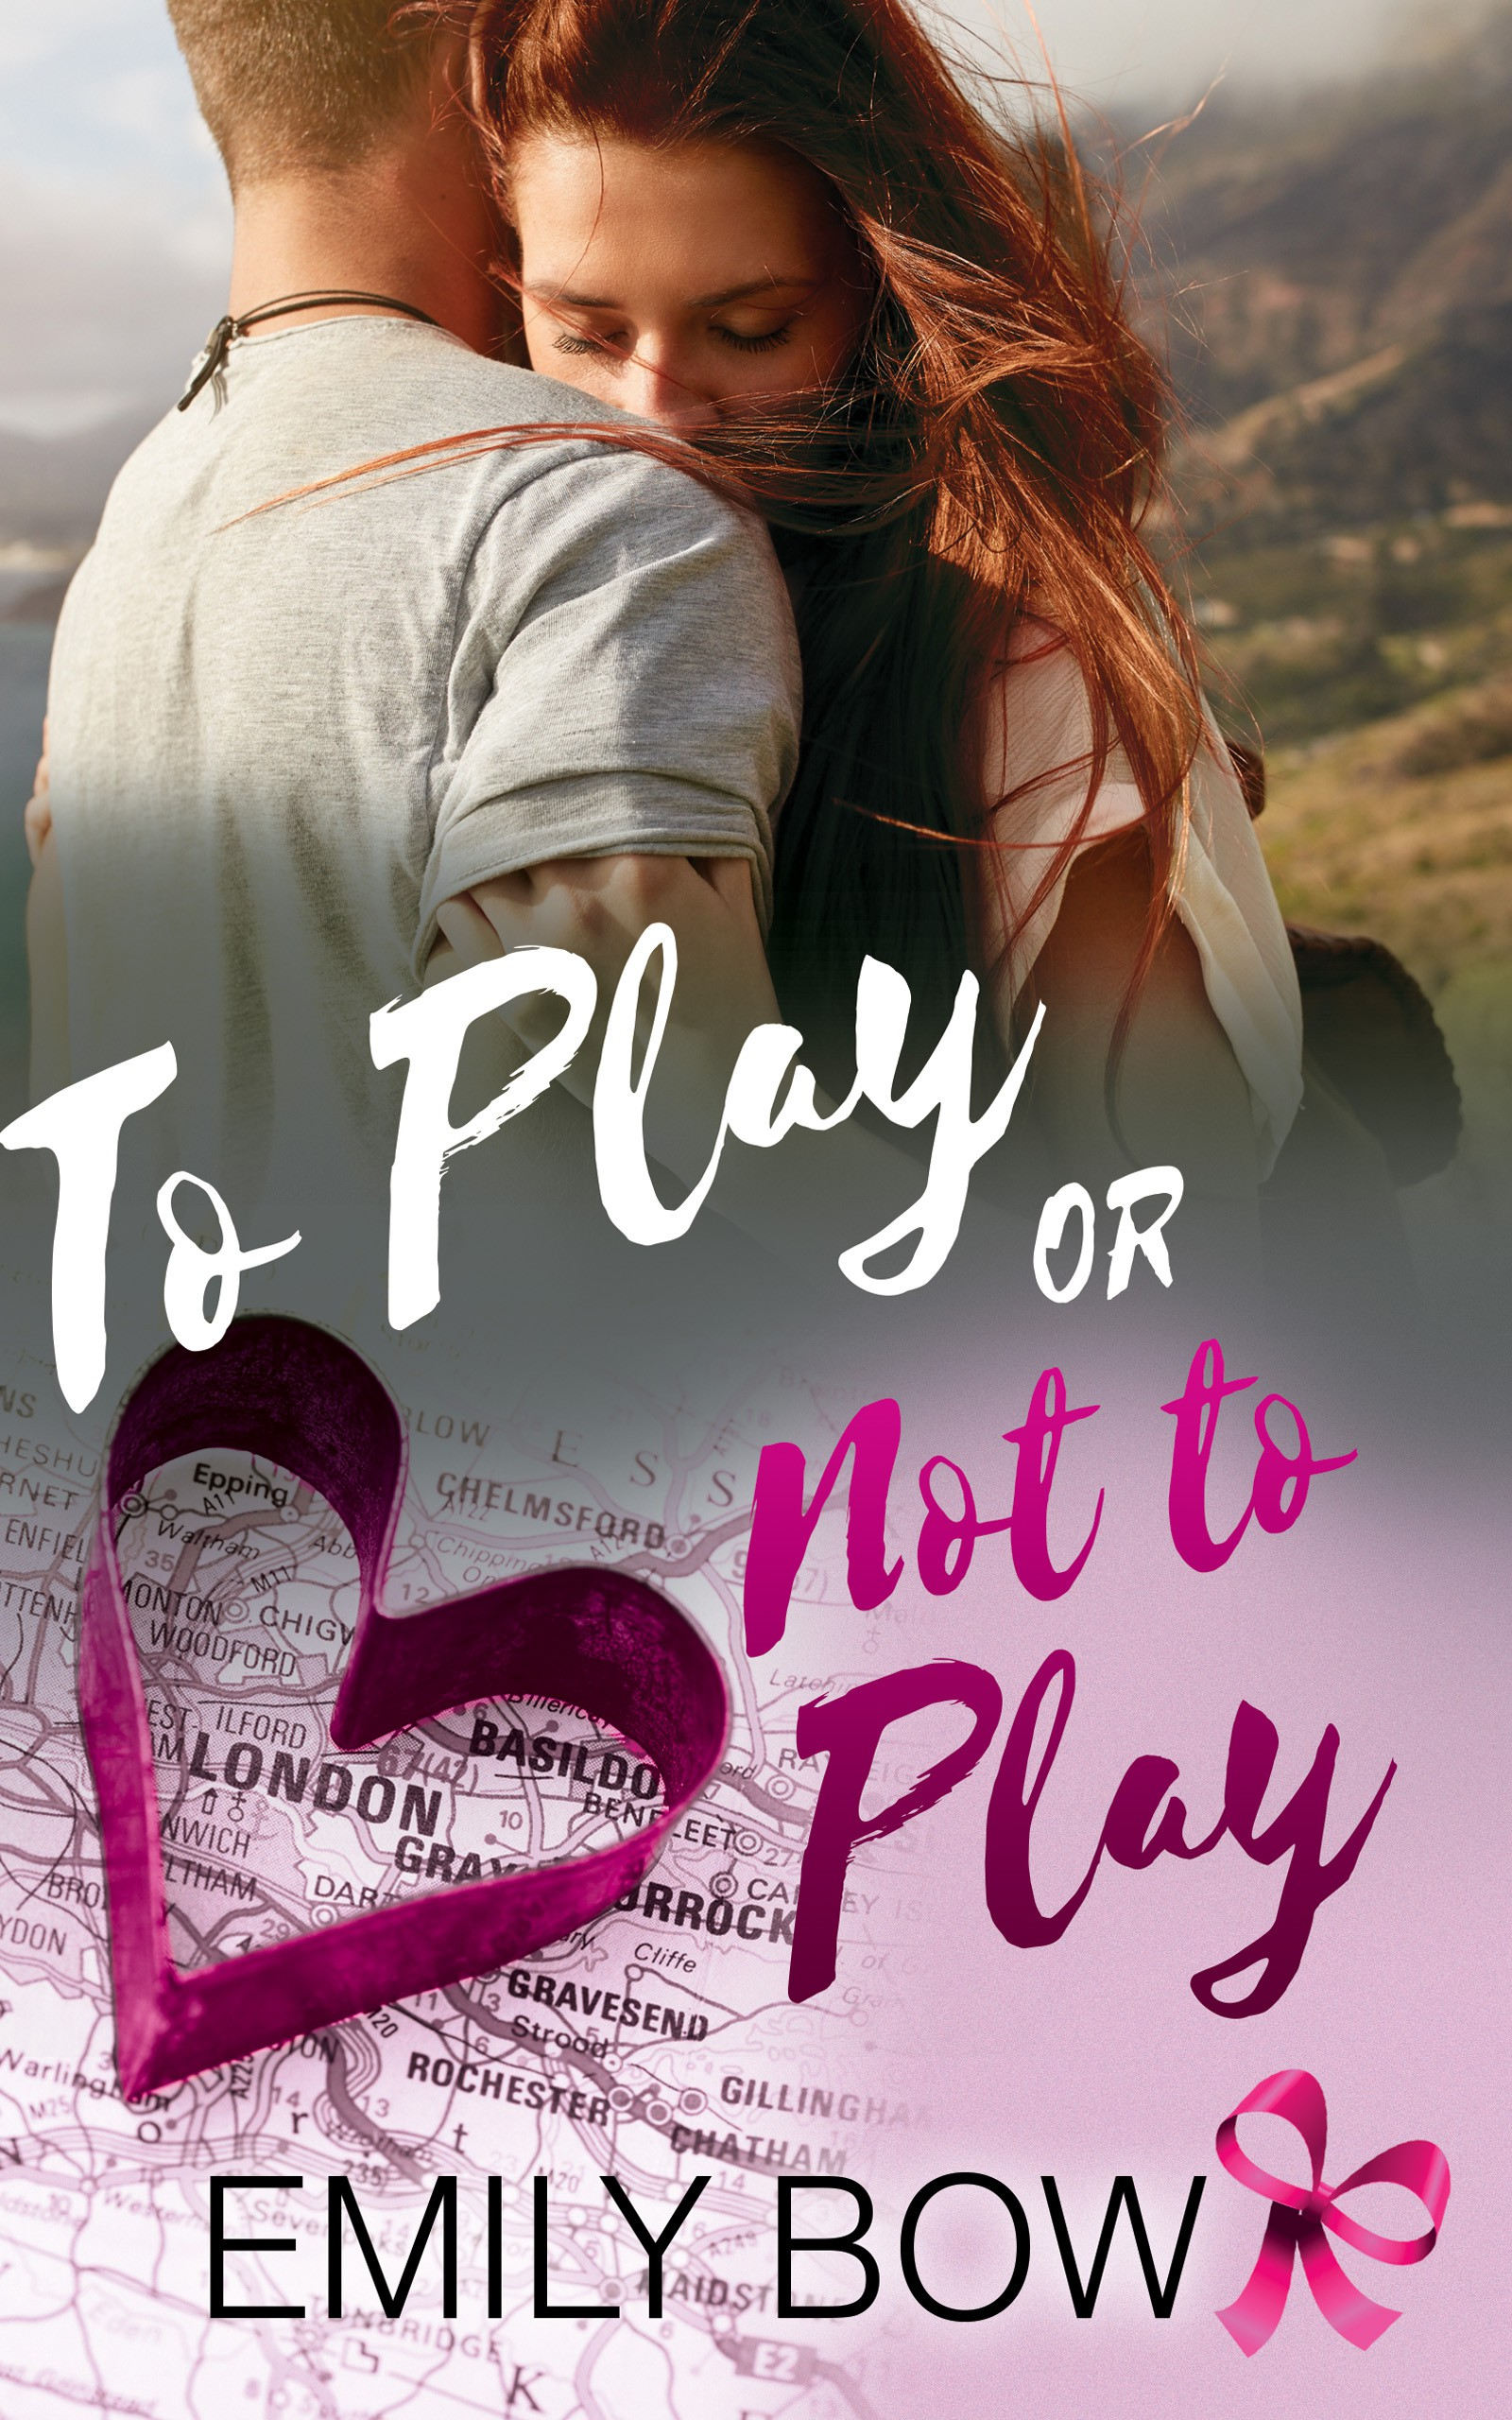 Create a book cover for 'To Play or Not To Play'